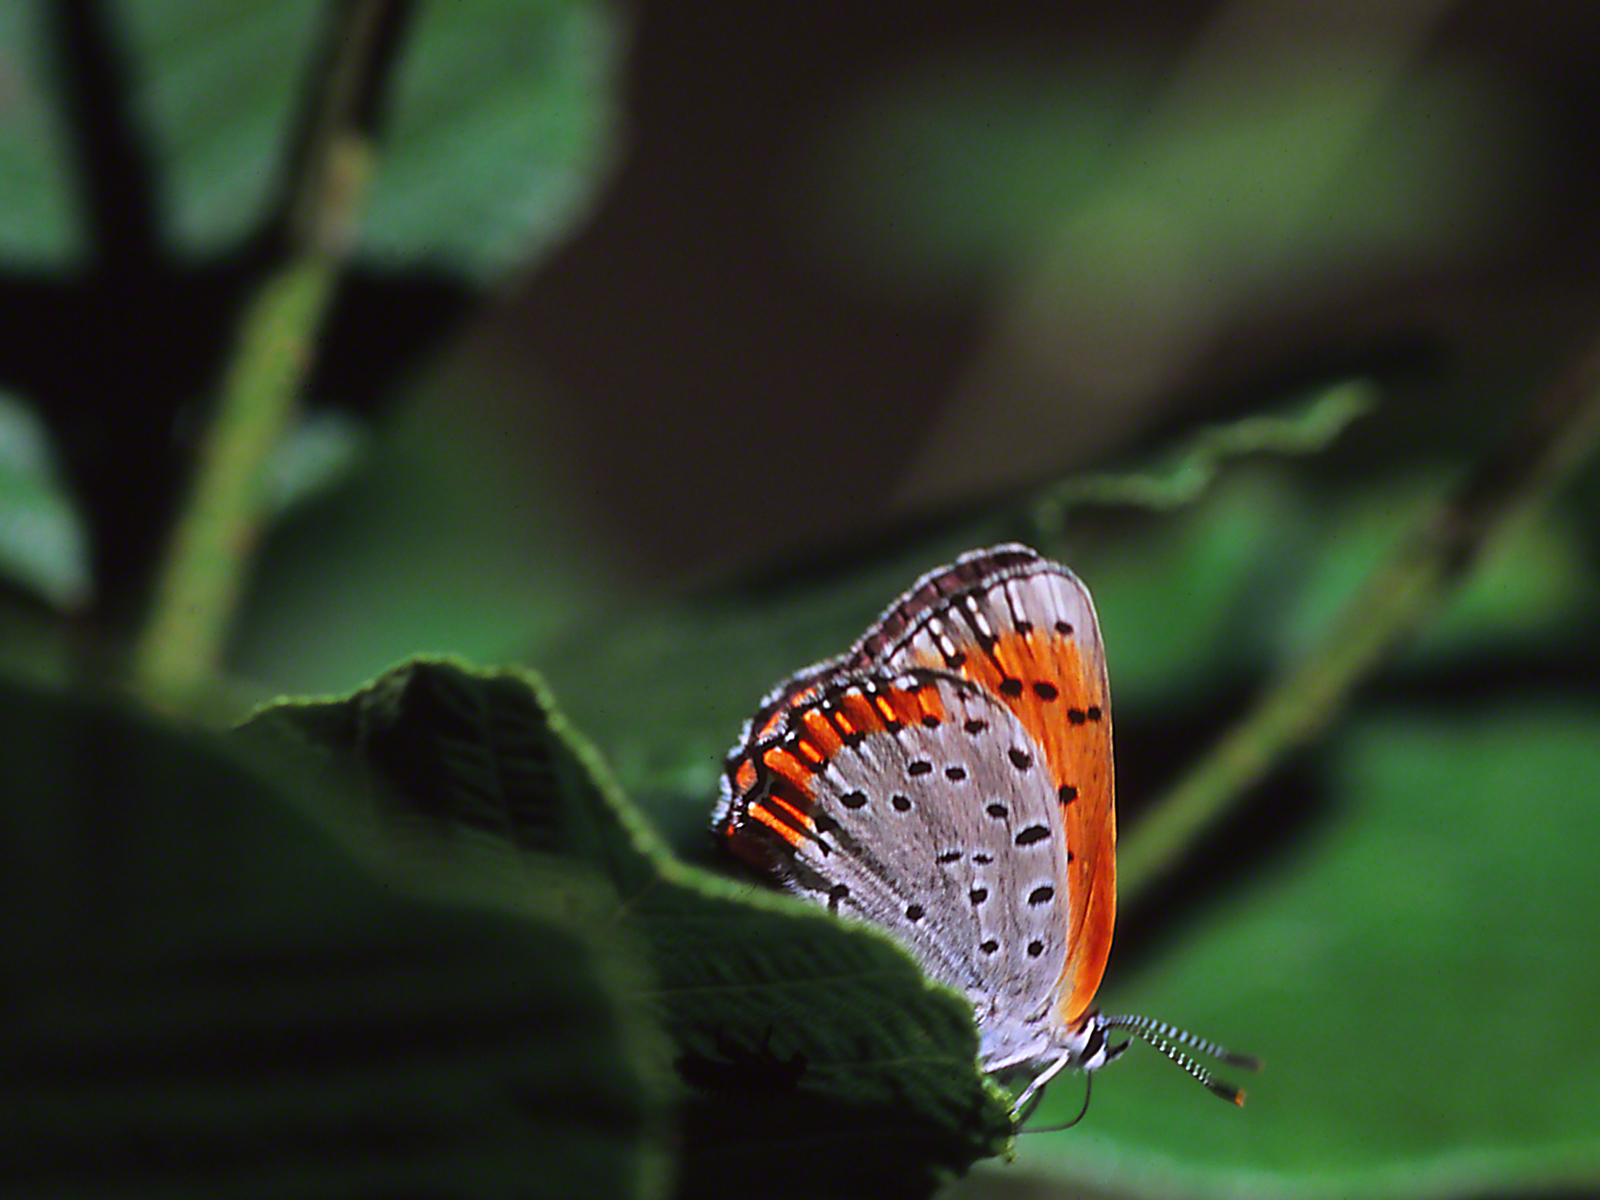 Bronze Copper Butterfly photographed by Jeff Zablow at Raccoon Creek State Park, Pennsylvania